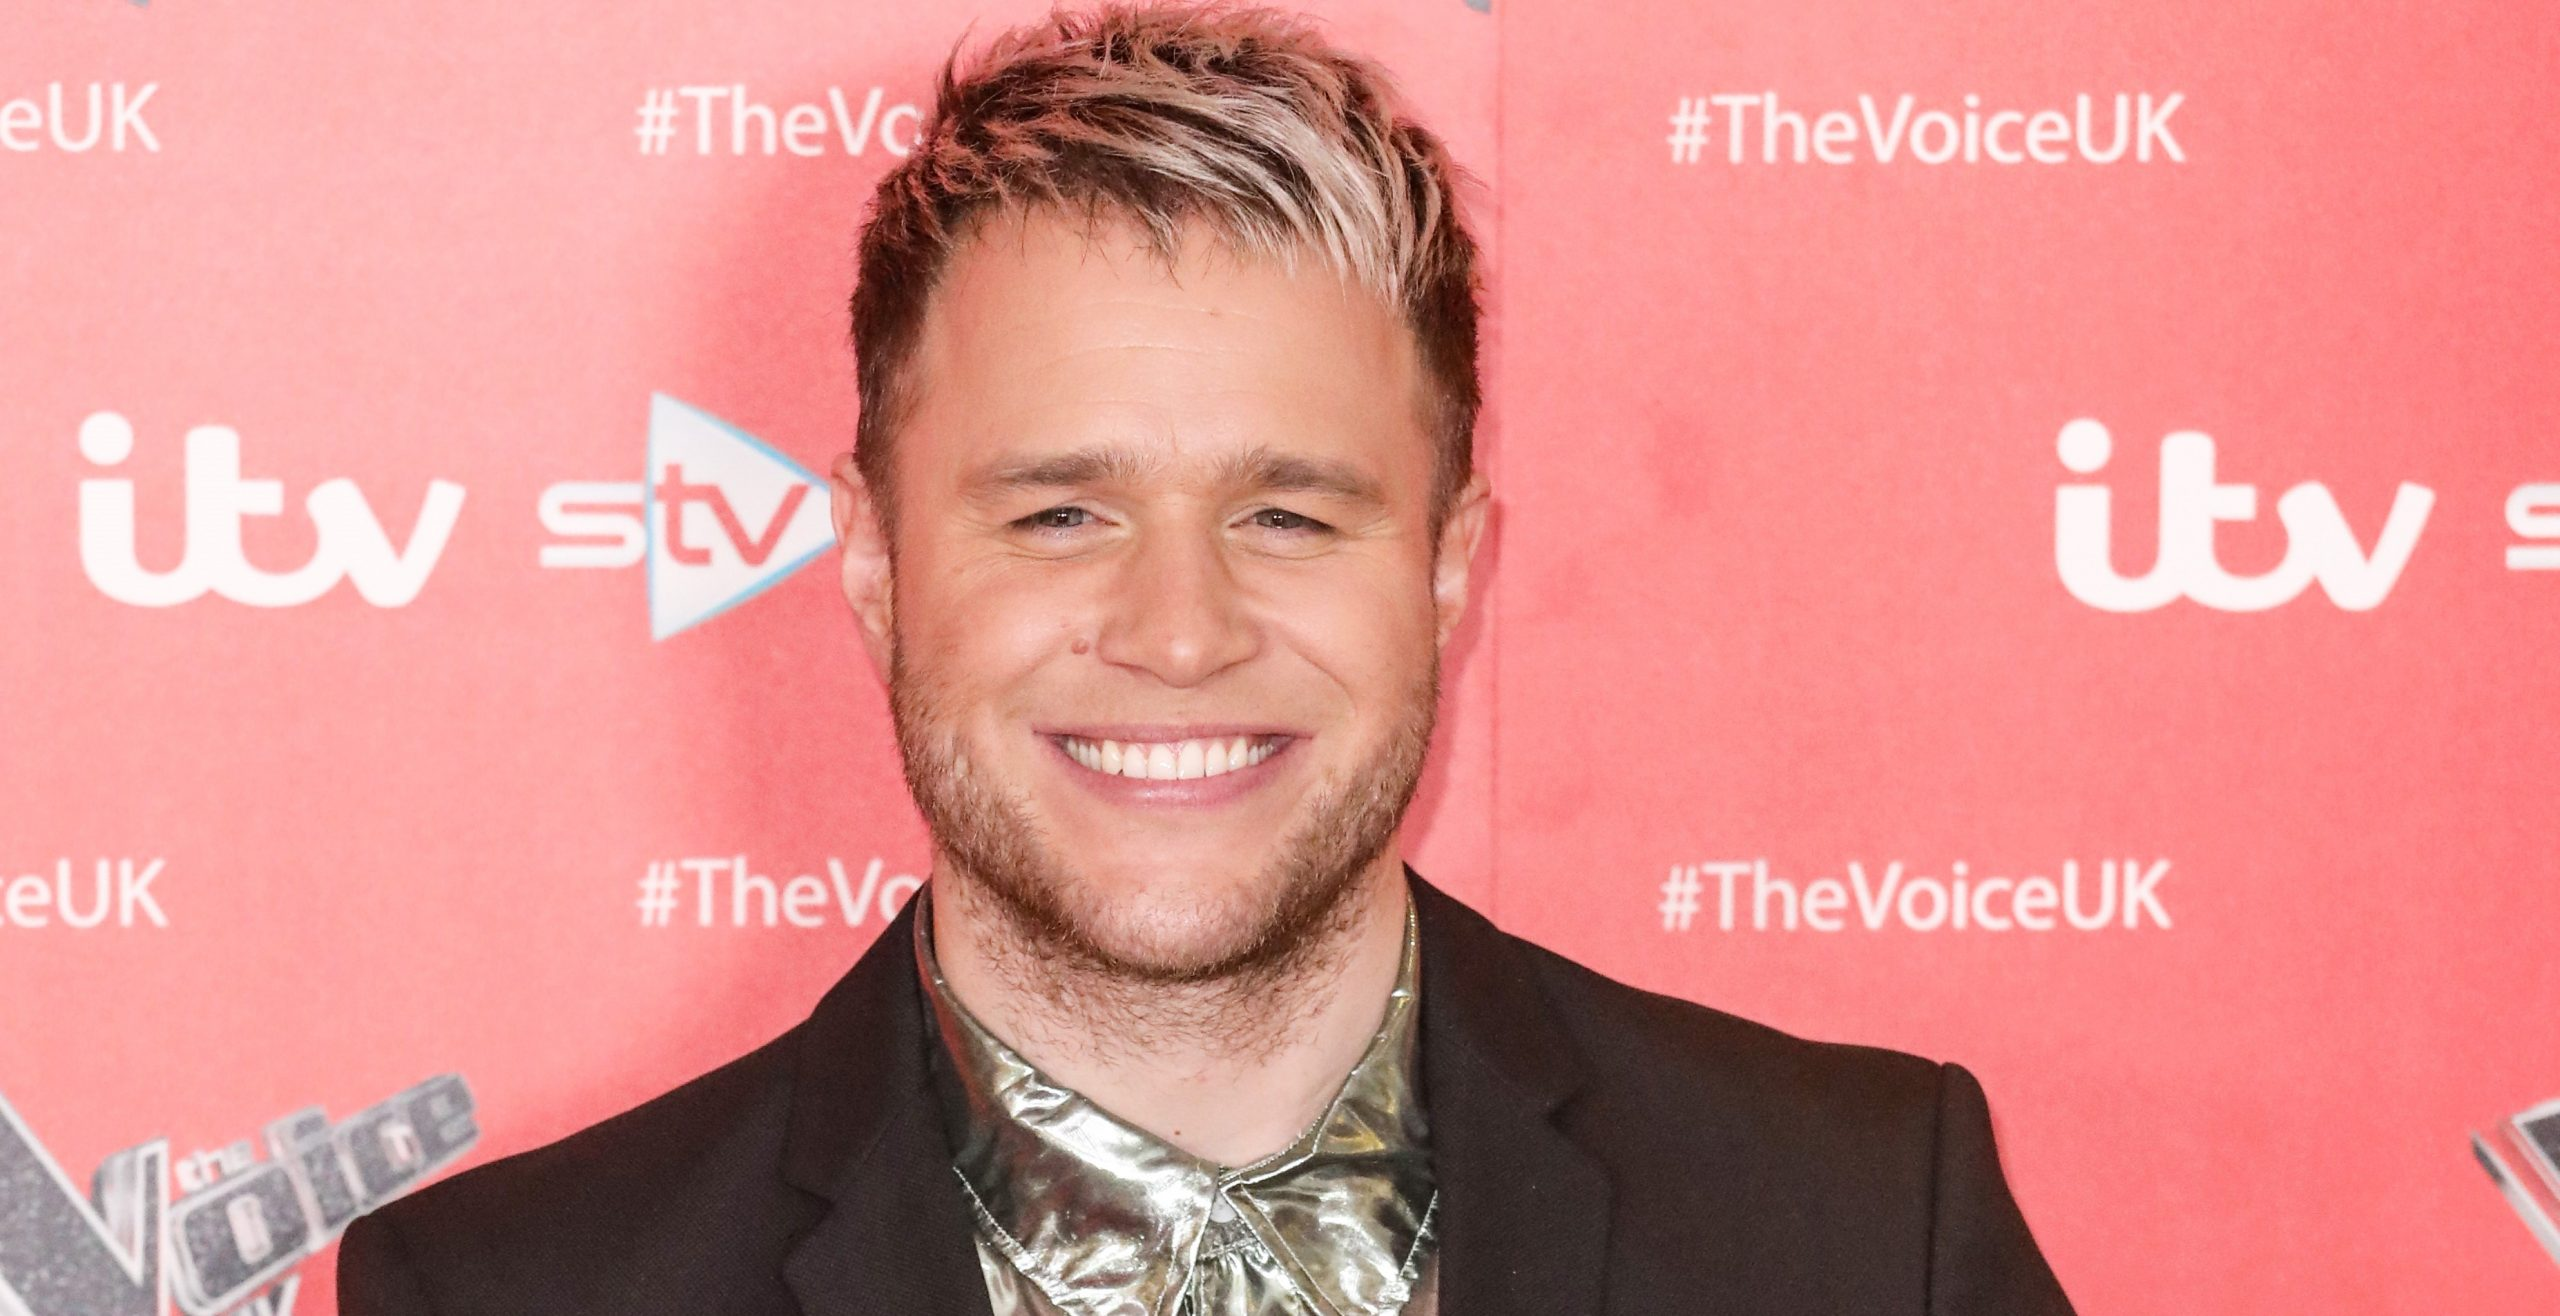 Olly Murs shows off ripped body after impressive two month fitness transformation